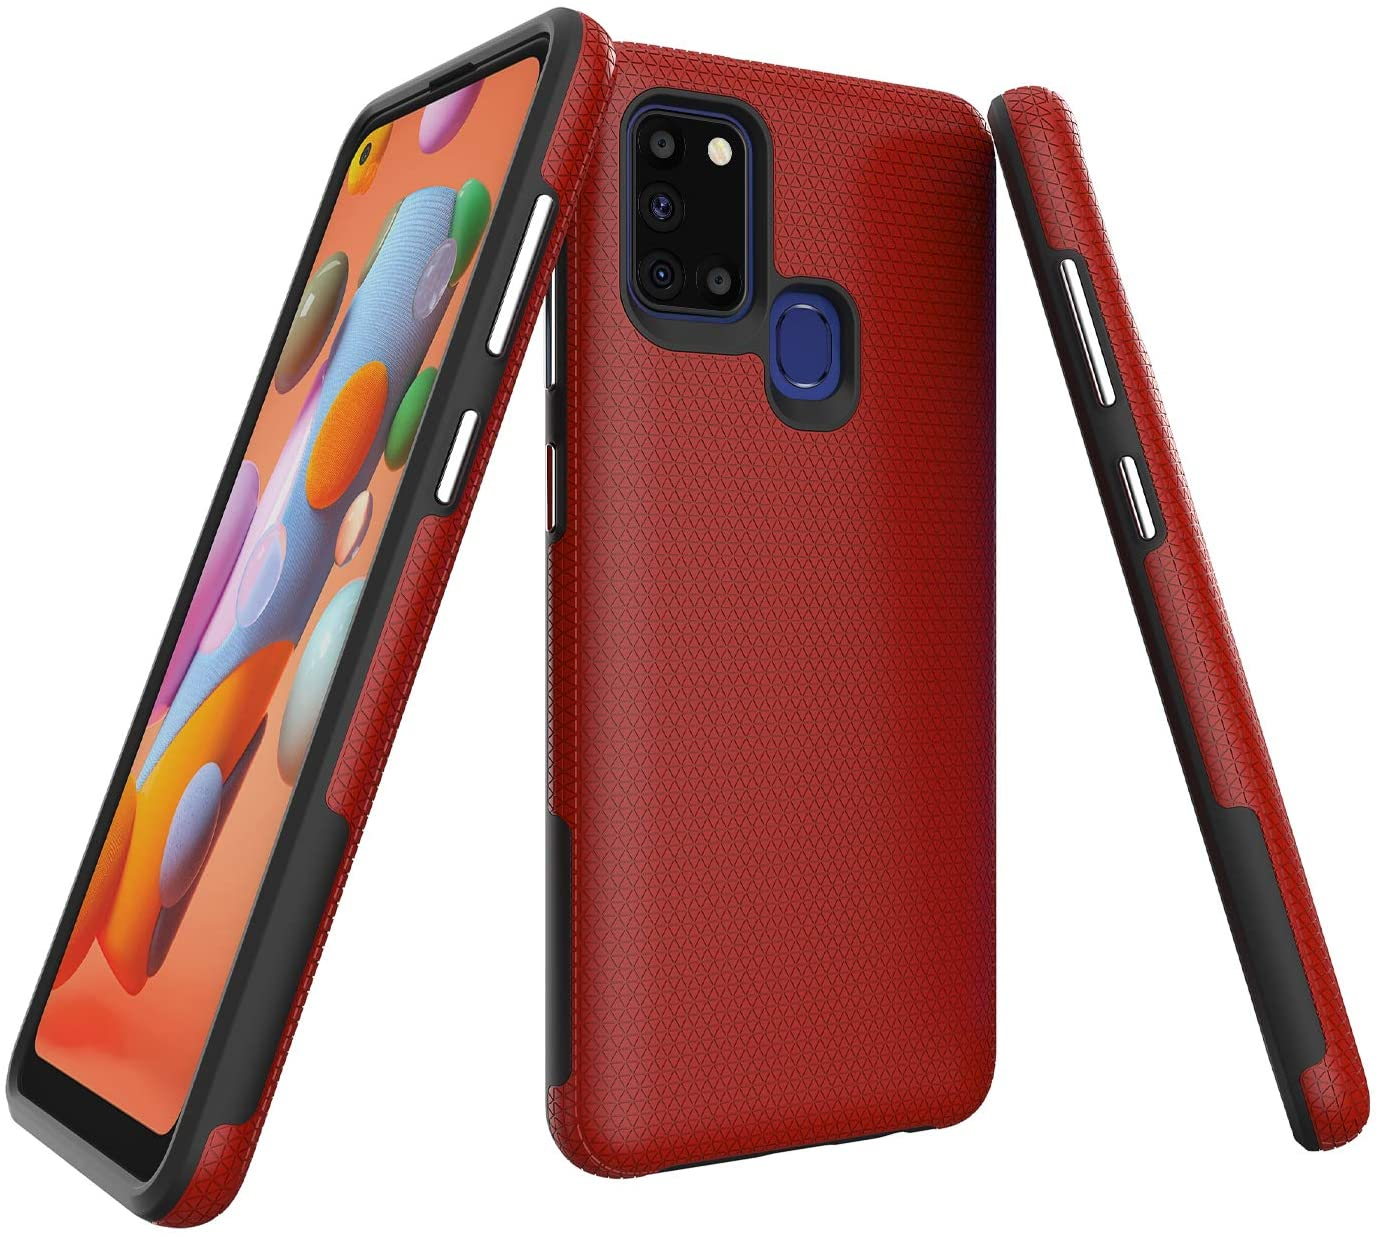 Ryphez for Samsung Galaxy A21S Case,Case for Galaxy A21S,[Dual Layer][Enhanced Grip][Anti-Scratch][Unique Rigid Texture][Independent Button] Hybrid Case for Galaxy A21S (Red)